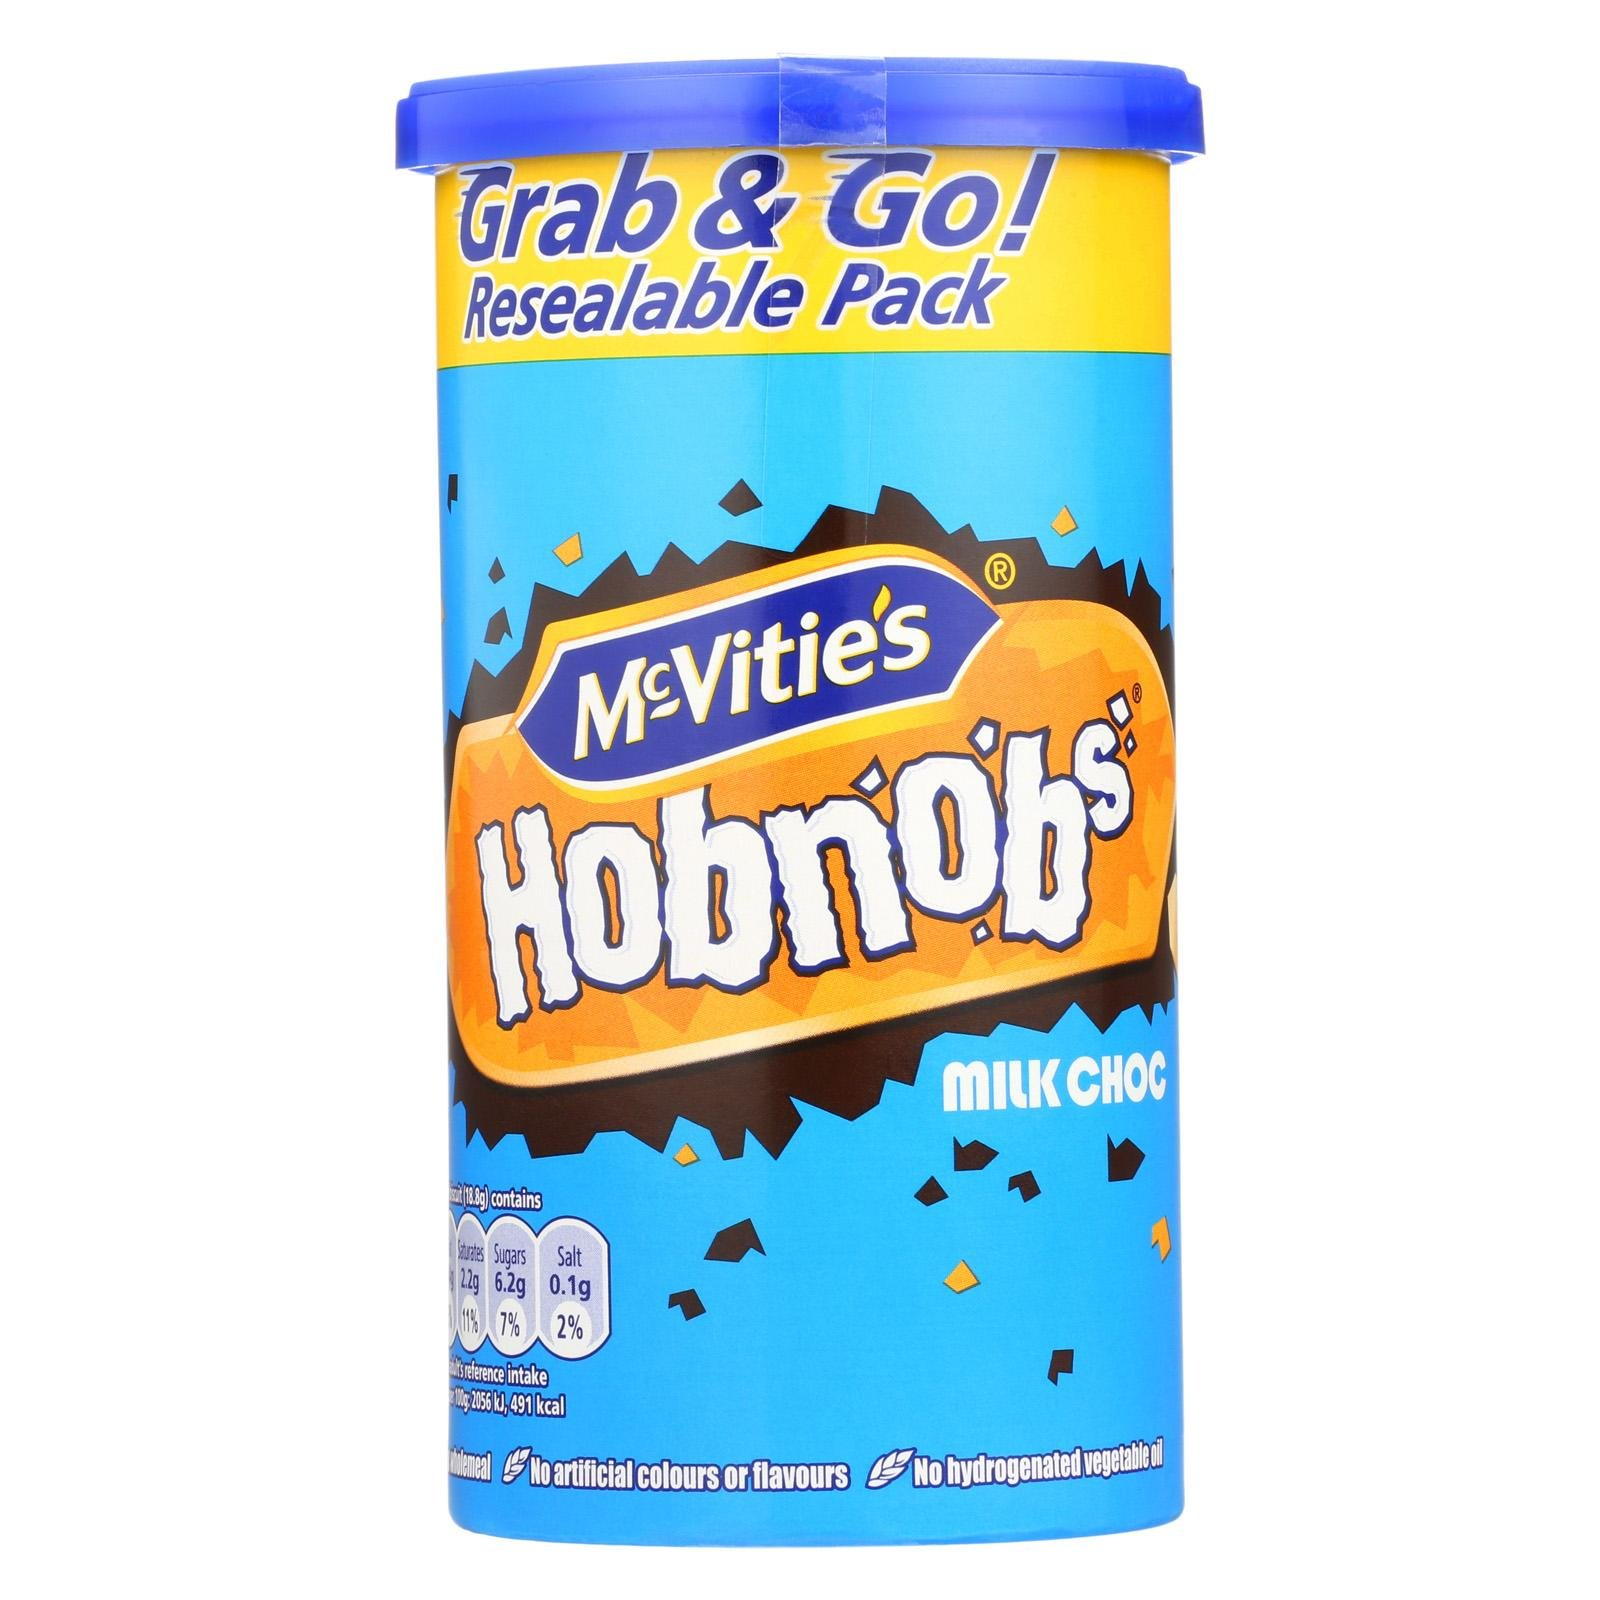 Mcvities, Hobnob'S Chocolate, Pack of 12, Size - 7.2 oz, Quantity - 1 Case